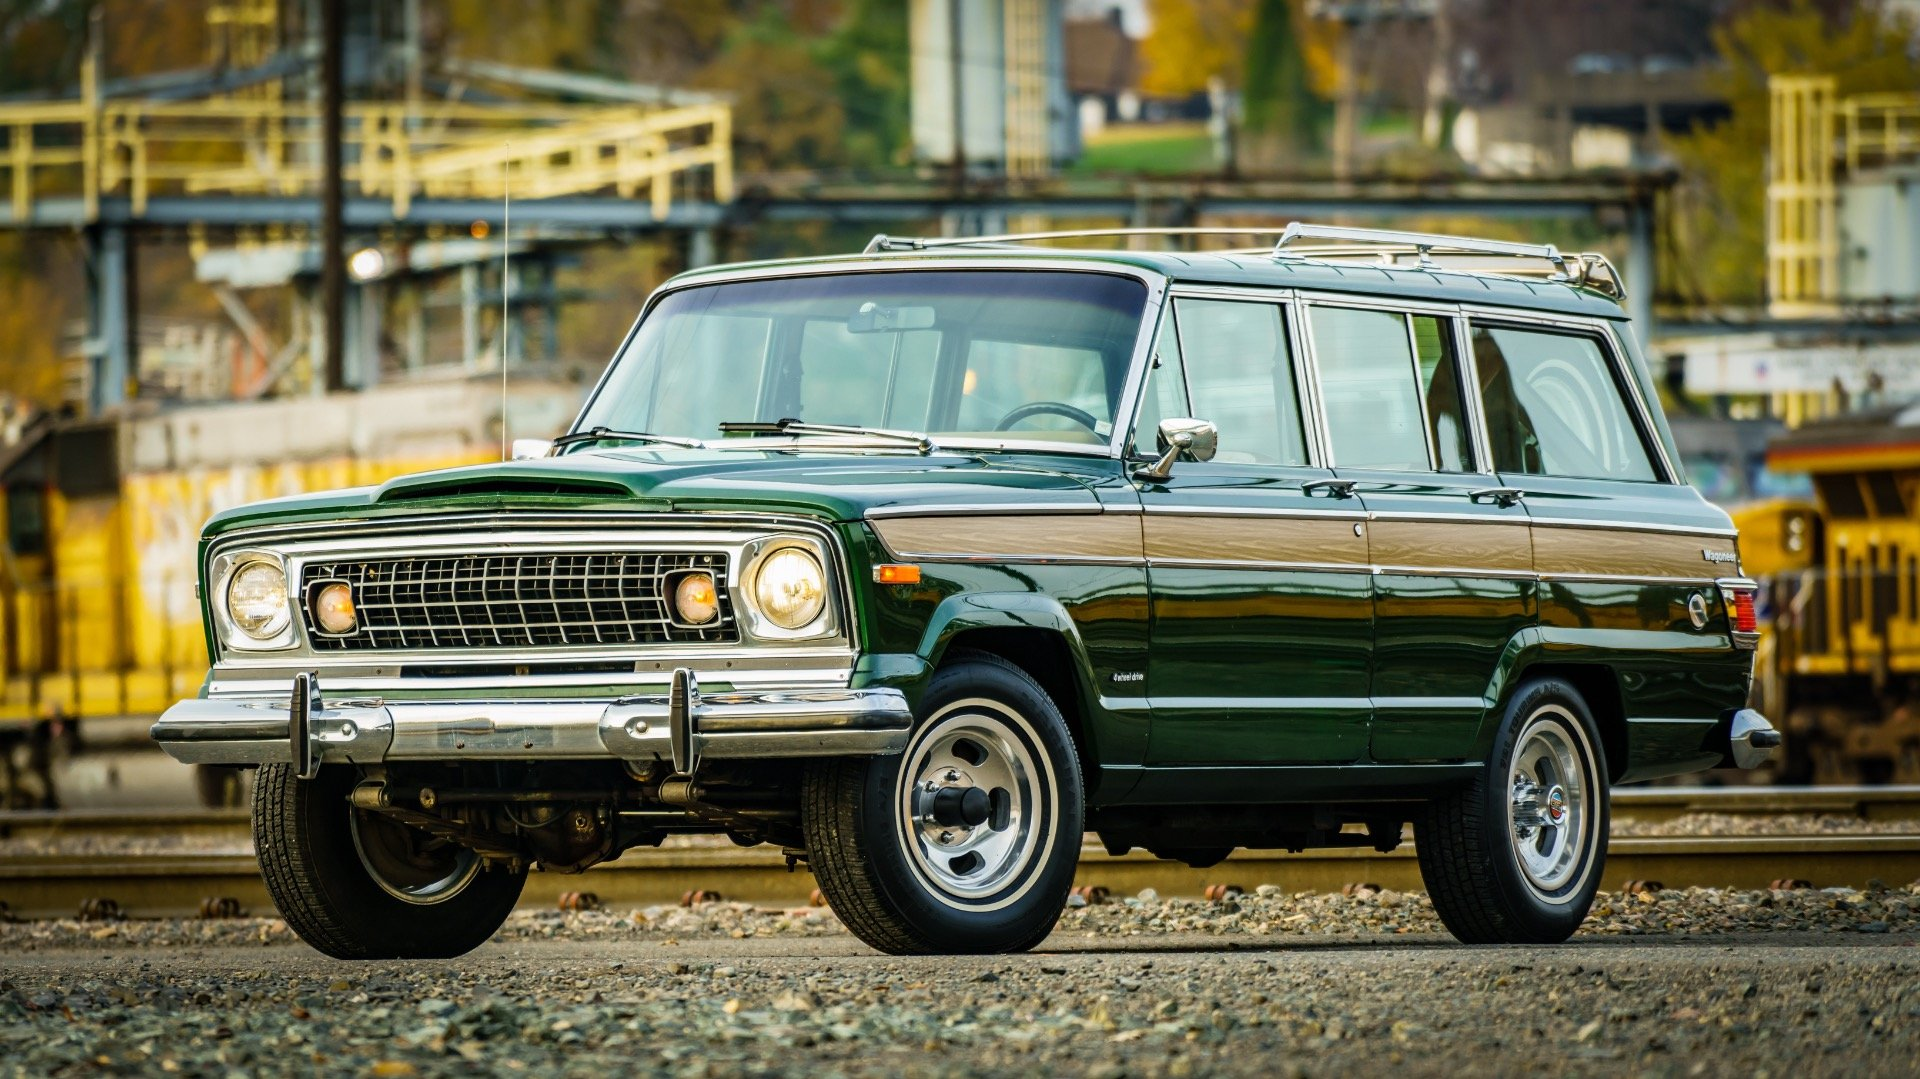 1977 Jeep Wagoneer = Go Green(~)Ginger Auto 85k miles For Sale (picture 1 of 6)